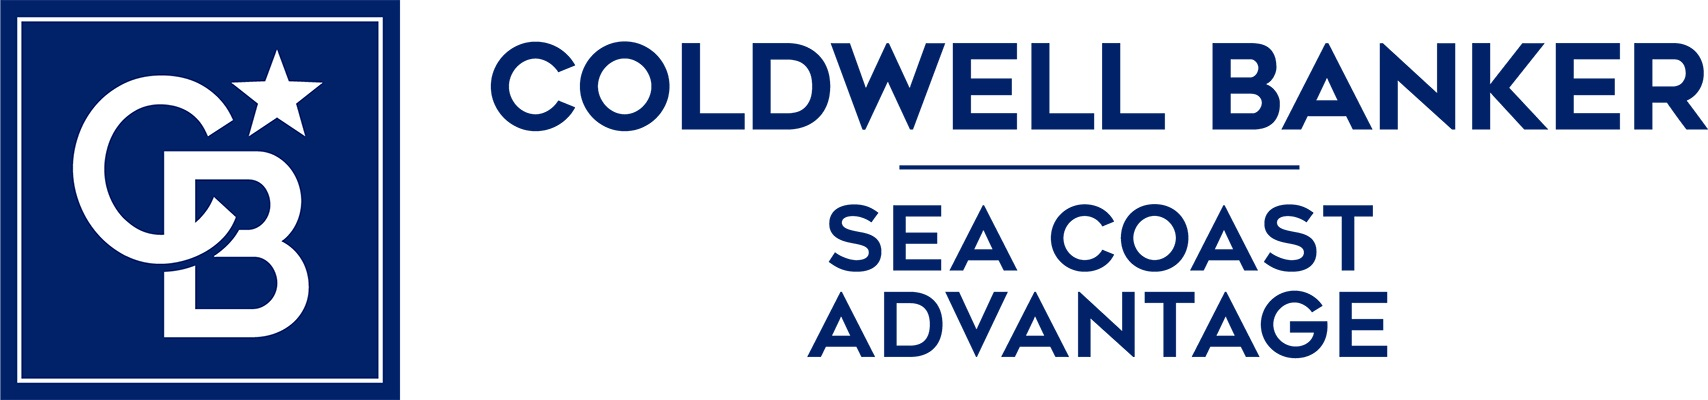 Melinda Highers - Coldwell Banker Sea Coast Advantage Realty